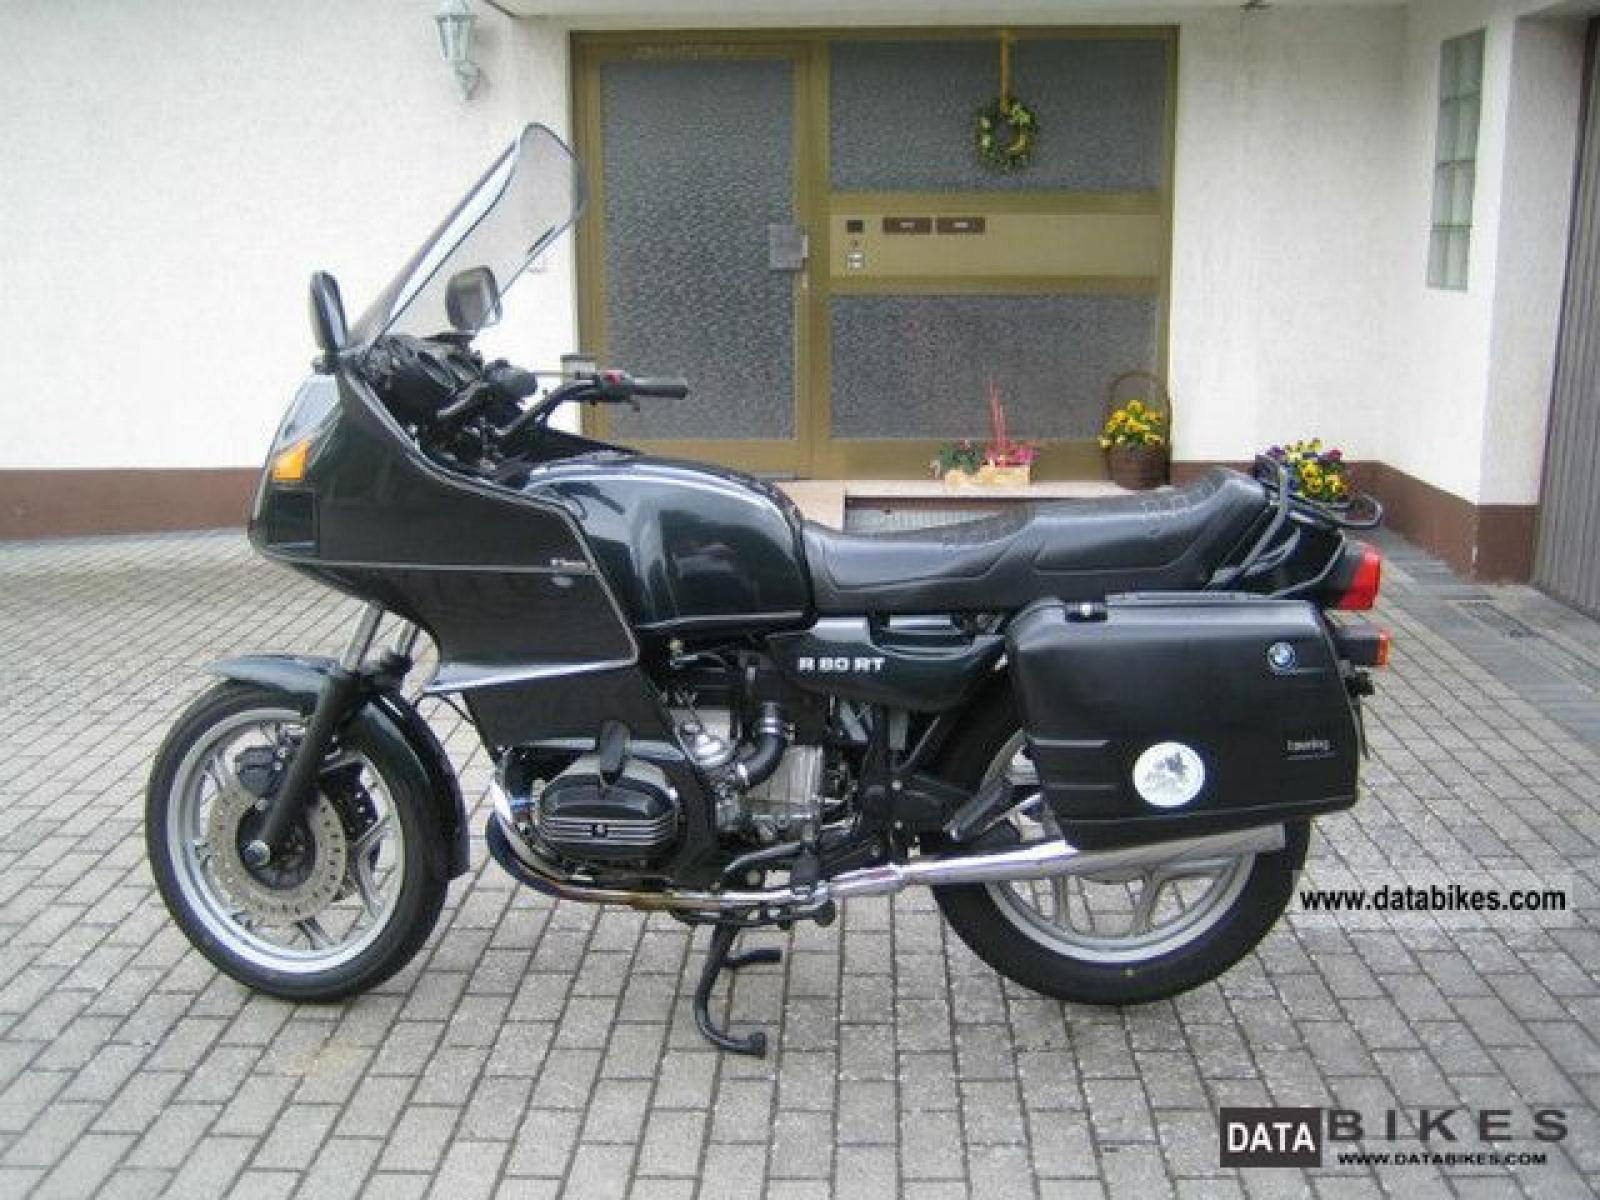 BMW R45 (reduced effect) 1985 images #77170